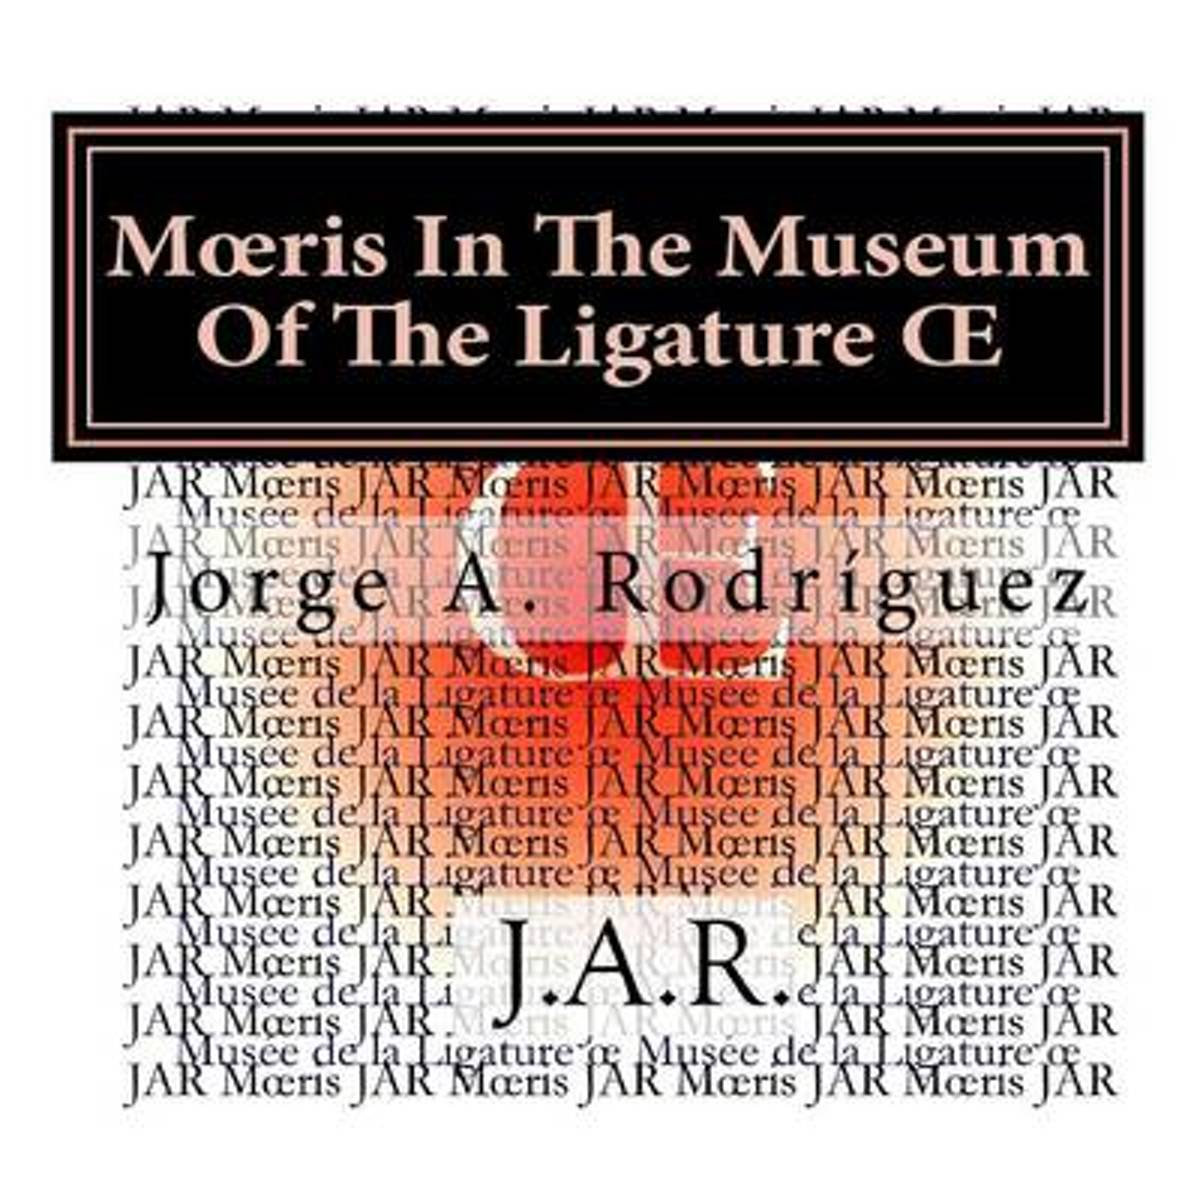 Moeris in the Museum of the Ligature OE